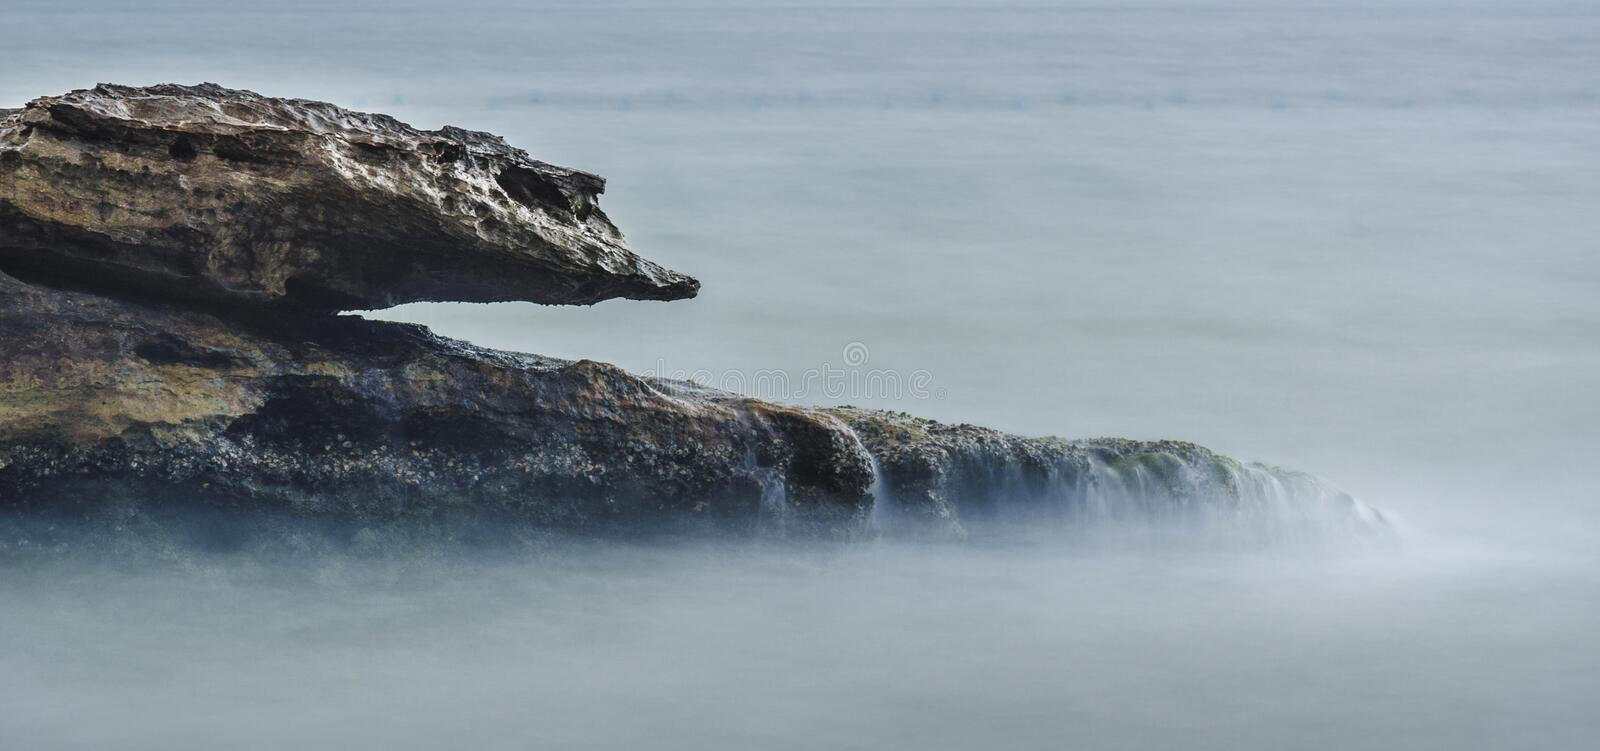 Download Shaped rock in the ocean stock photo. Image of tranquil - 30139354